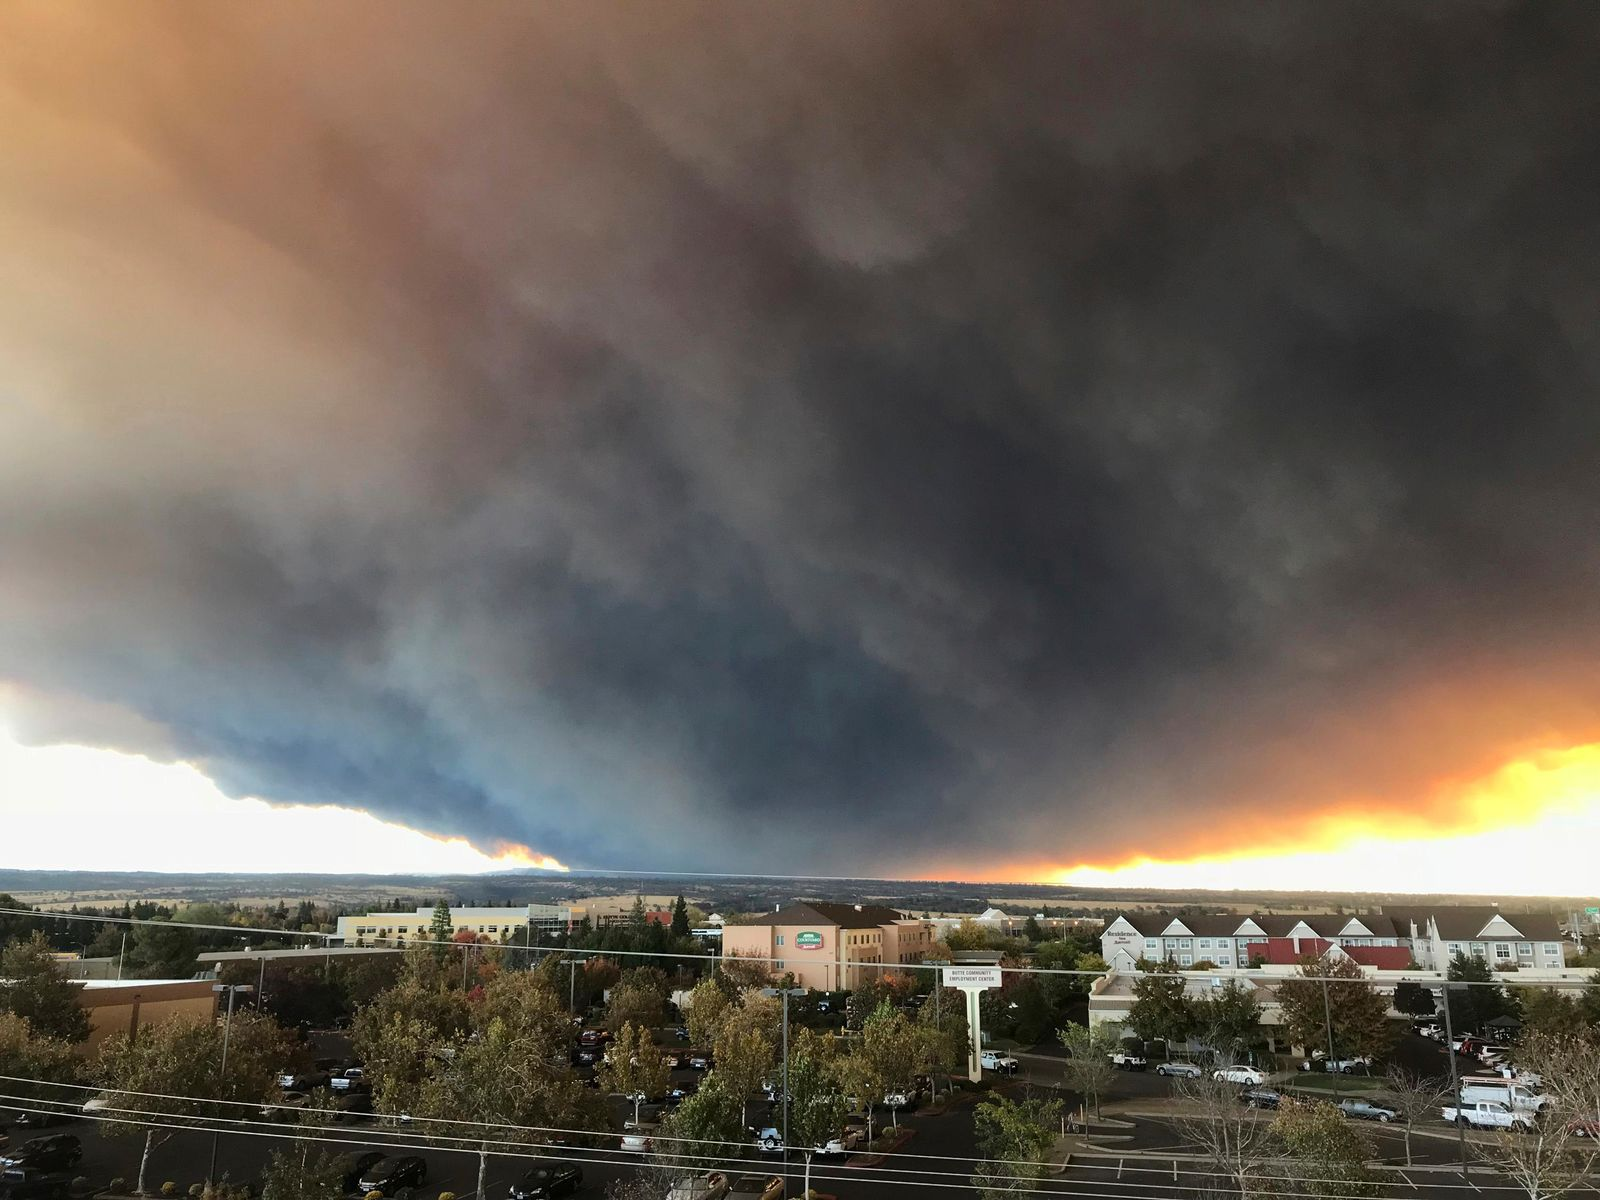 The massive plume from the Camp Fire, burning in the Feather River Canyon near Paradise, Calif., wafts over the Sacramento Valley as seen from Chico, Calif., on Thursday, Nov. 8, 2018. (David Little/Chico Enterprise-Record via AP)